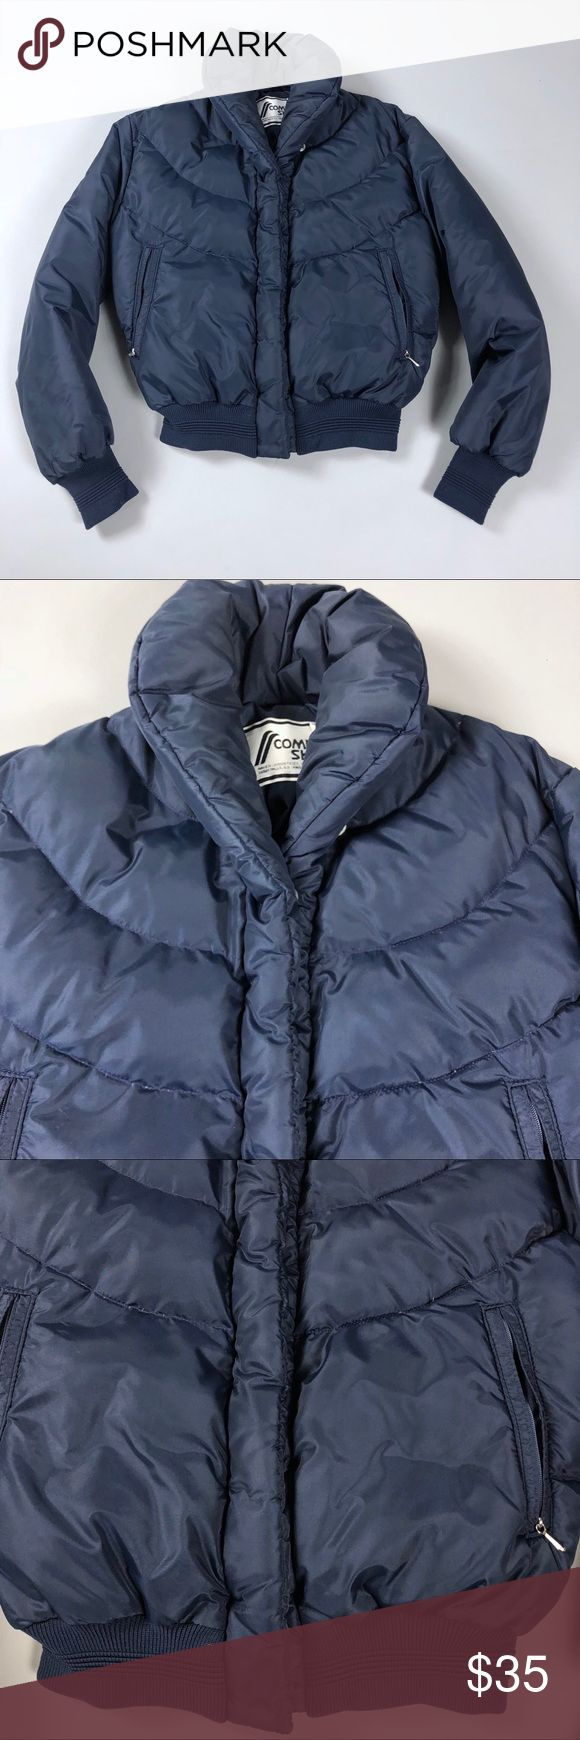 """Vintage 80s Puffer Down Jacket Vintage 80s Comfy Ski USA Womens Navy Blue Puffer Down Coat Jacket   Labeled size 10, but vintage sizing tends to run small & this fits more like a women's size Small.  100% nylon with down fill & 100% polyester lining.  As all brands are sized differently, please review measurements to ensure a proper fit.  Bust: 40"""" Length: 19.5"""" Sleeve: 24"""" from shoulder seam to end of sleeve  Very good condition. Small hole in one sleeve as pictured. Has pilling on the knit…"""